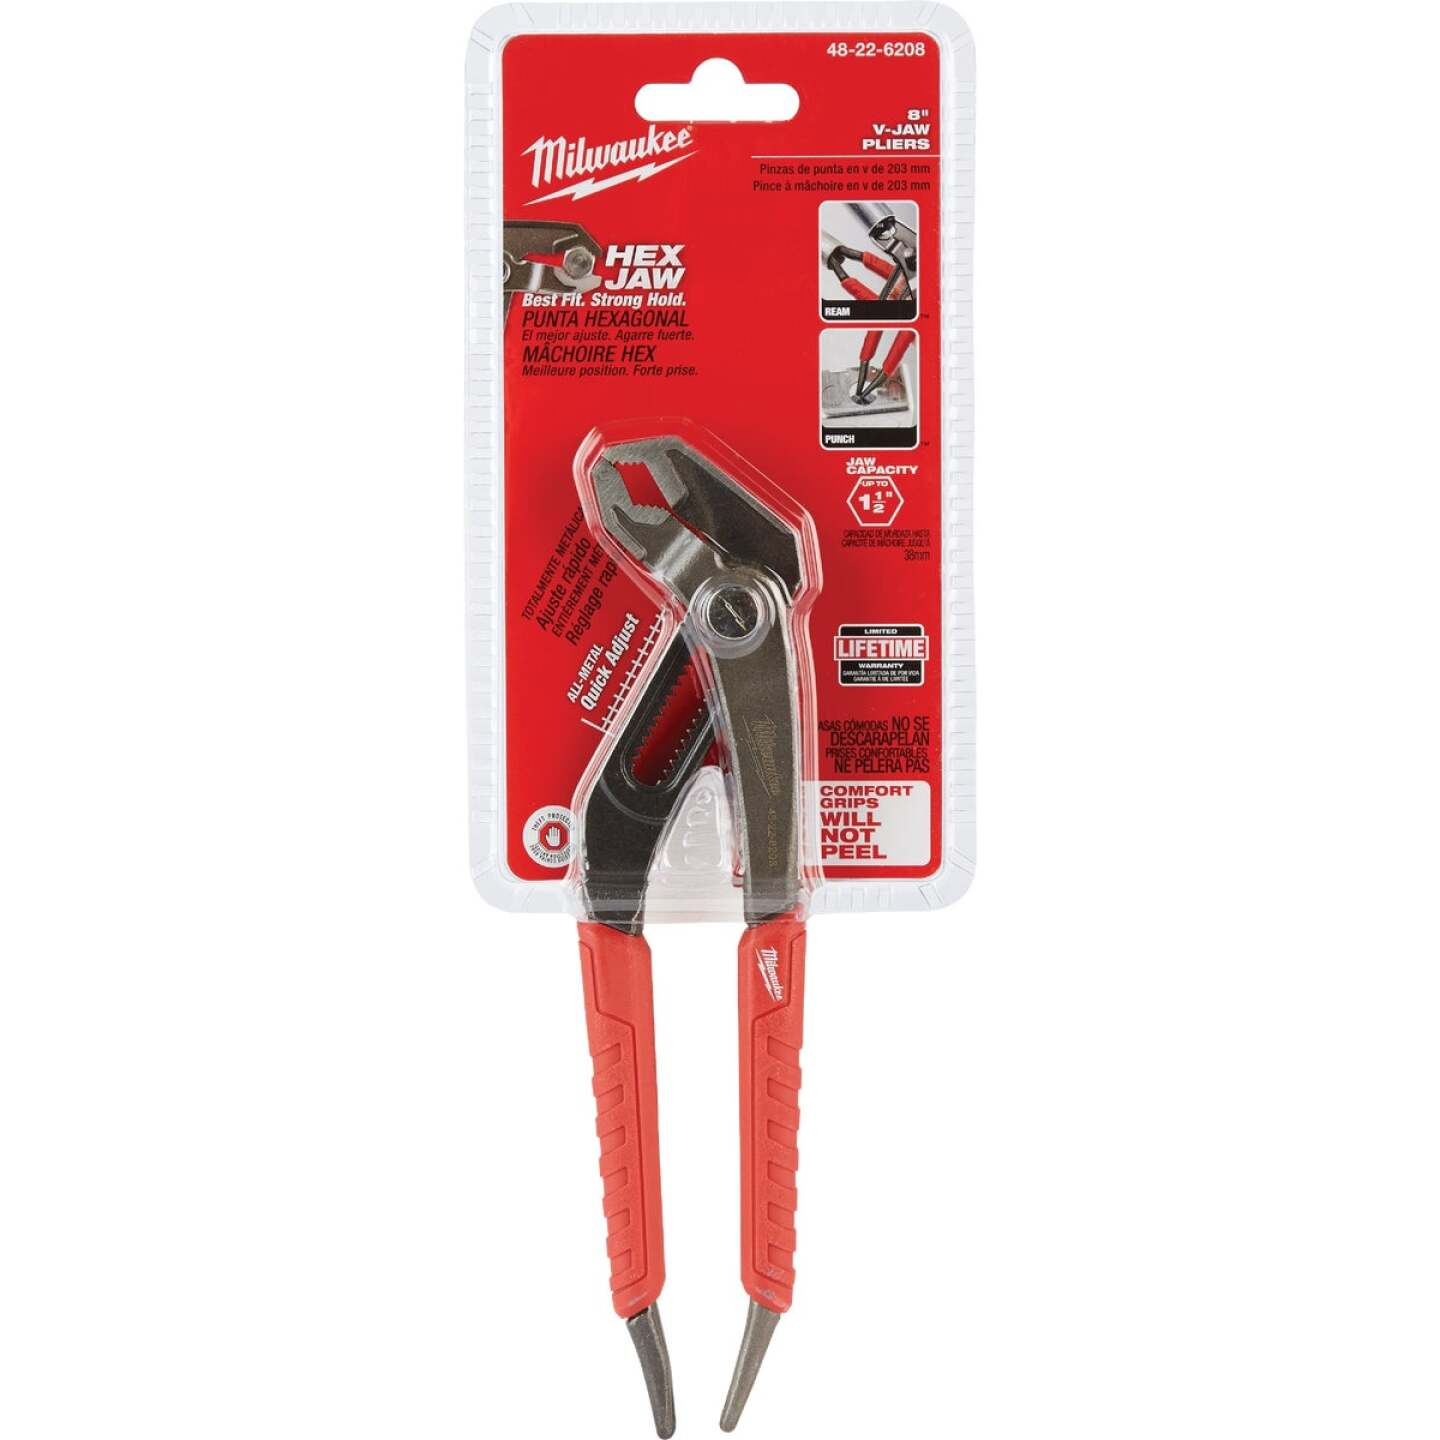 Milwaukee 8 In. V-Jaw Groove Joint Pliers Image 1